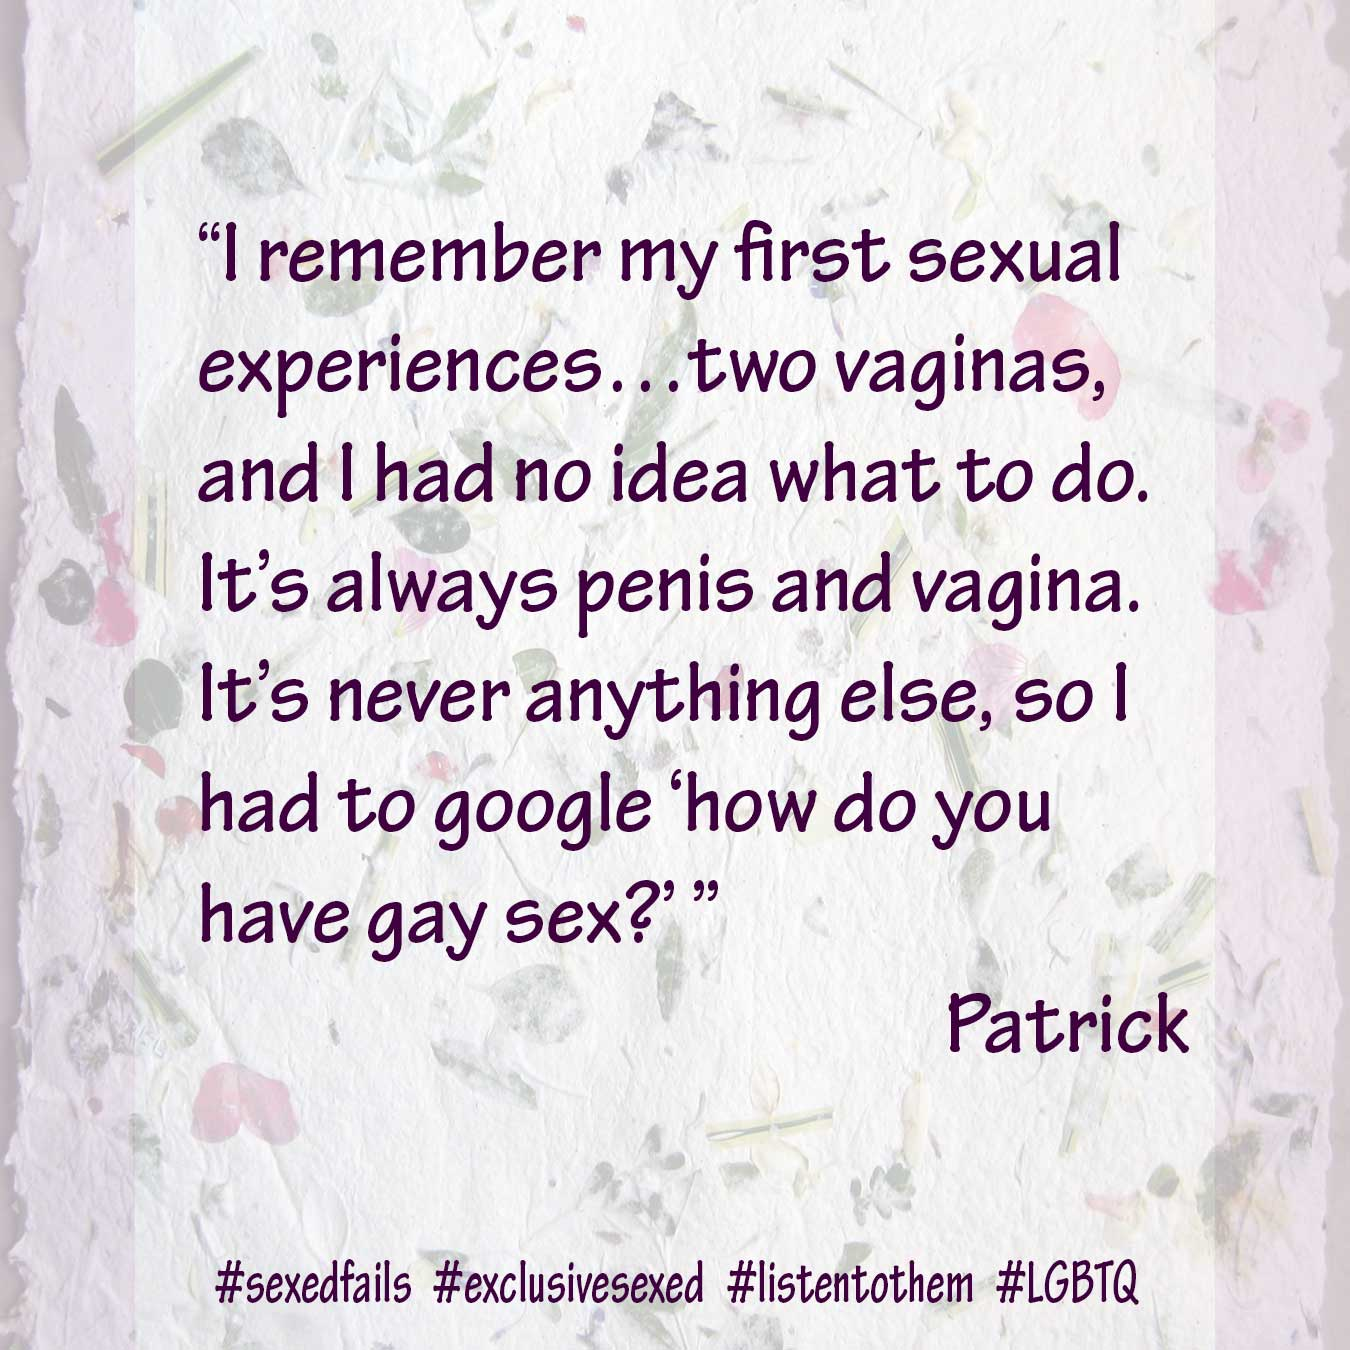 """I remember my first sexual experiences…two vaginas, and I had no idea what to do. It's always penis and vagina. It's never anything else, so I had to google 'how do you have gay sex?'."" Patrick"